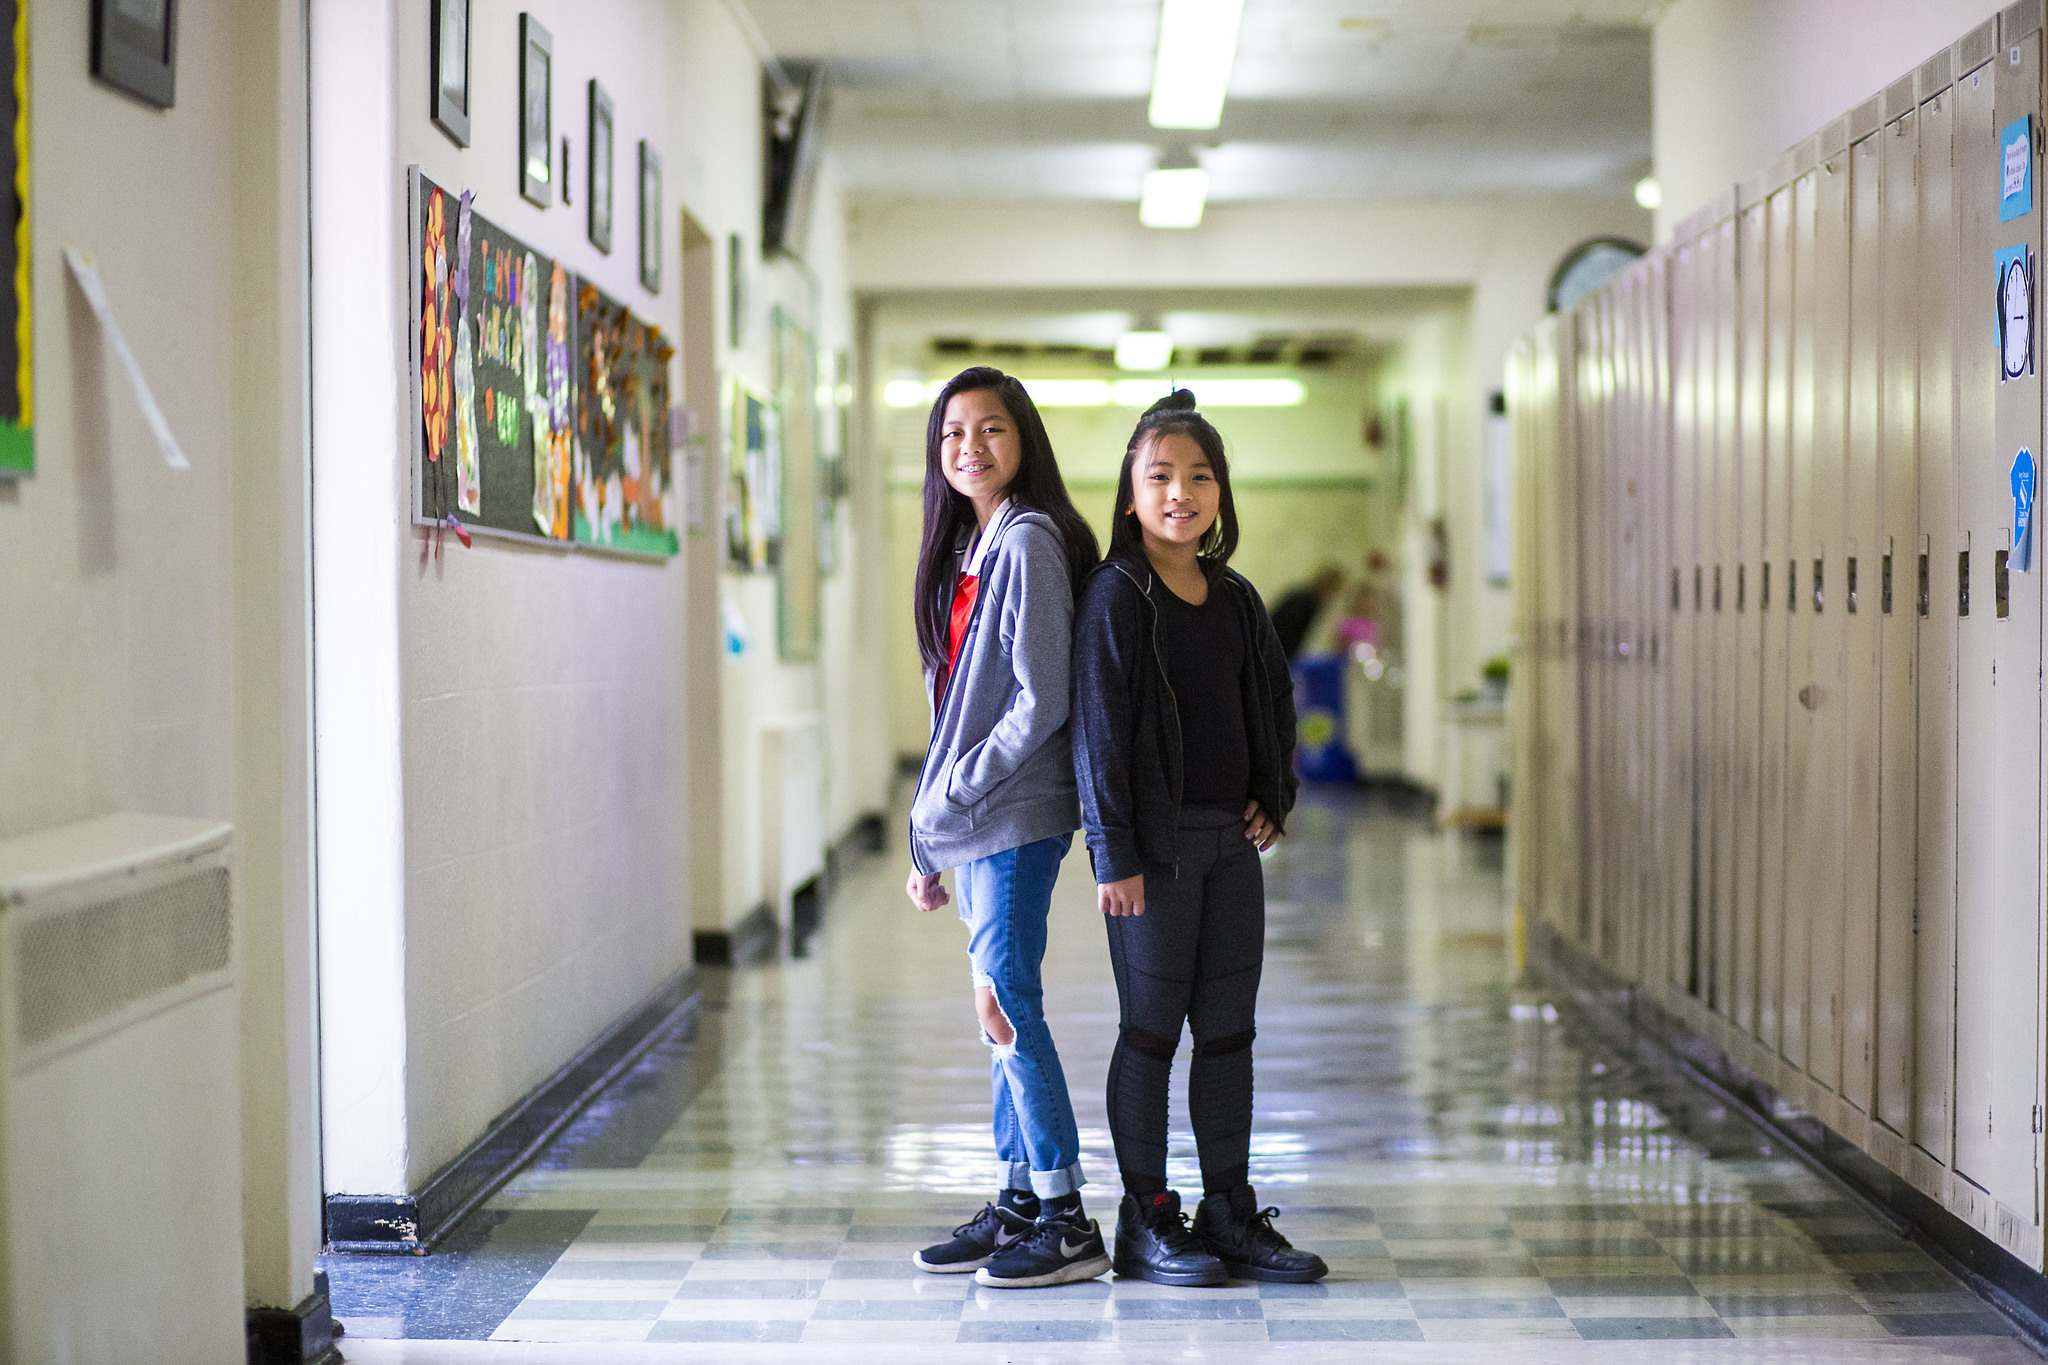 Sargent Park School students Jarylle Santos, 13 (left), and Mikayla Seculles, 10. Mindfulness &#8216;can really help you calm down and learn better,&rsquo; Mikayla says.</p>